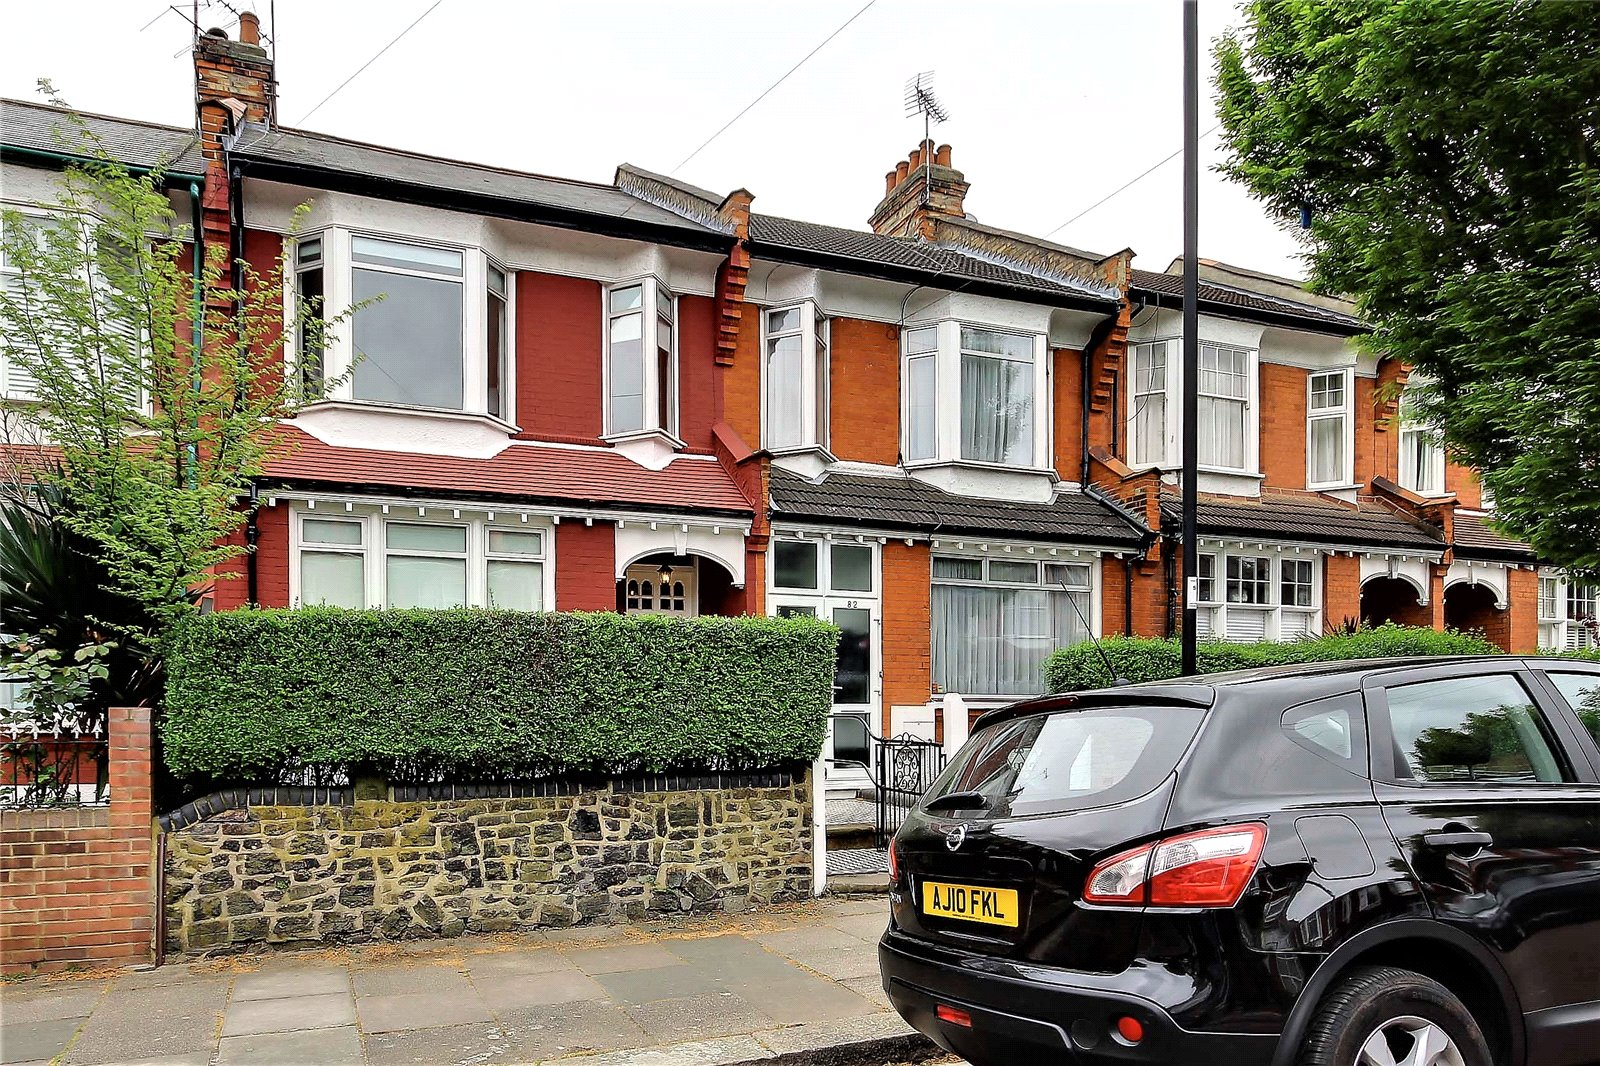 3 Bedrooms Terraced House for sale in Ollerton Road Bounds Green London N11